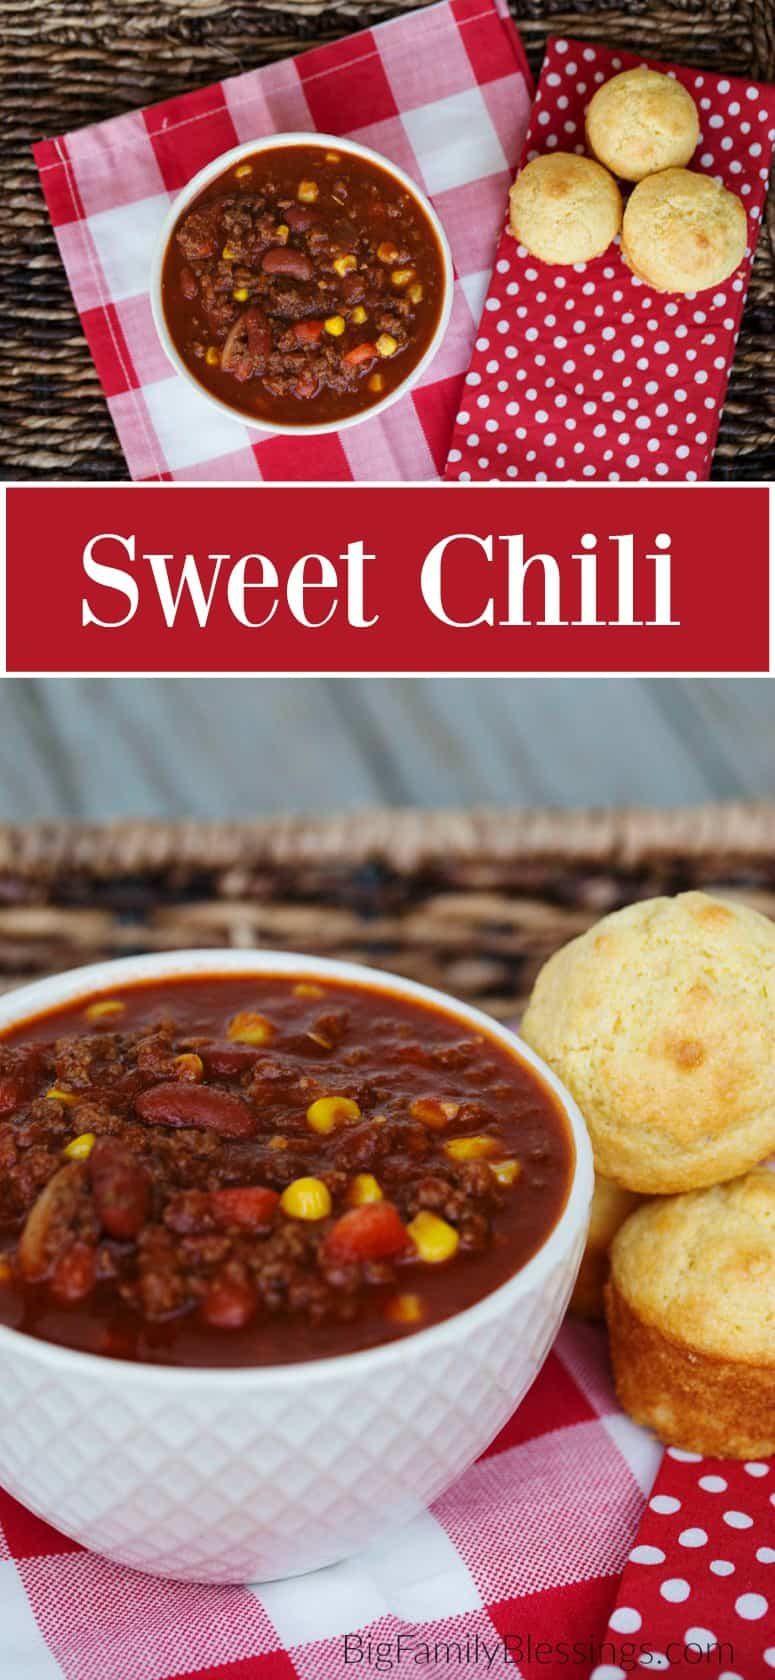 Sweet Chili - comfort food with a sweet spicy kick.